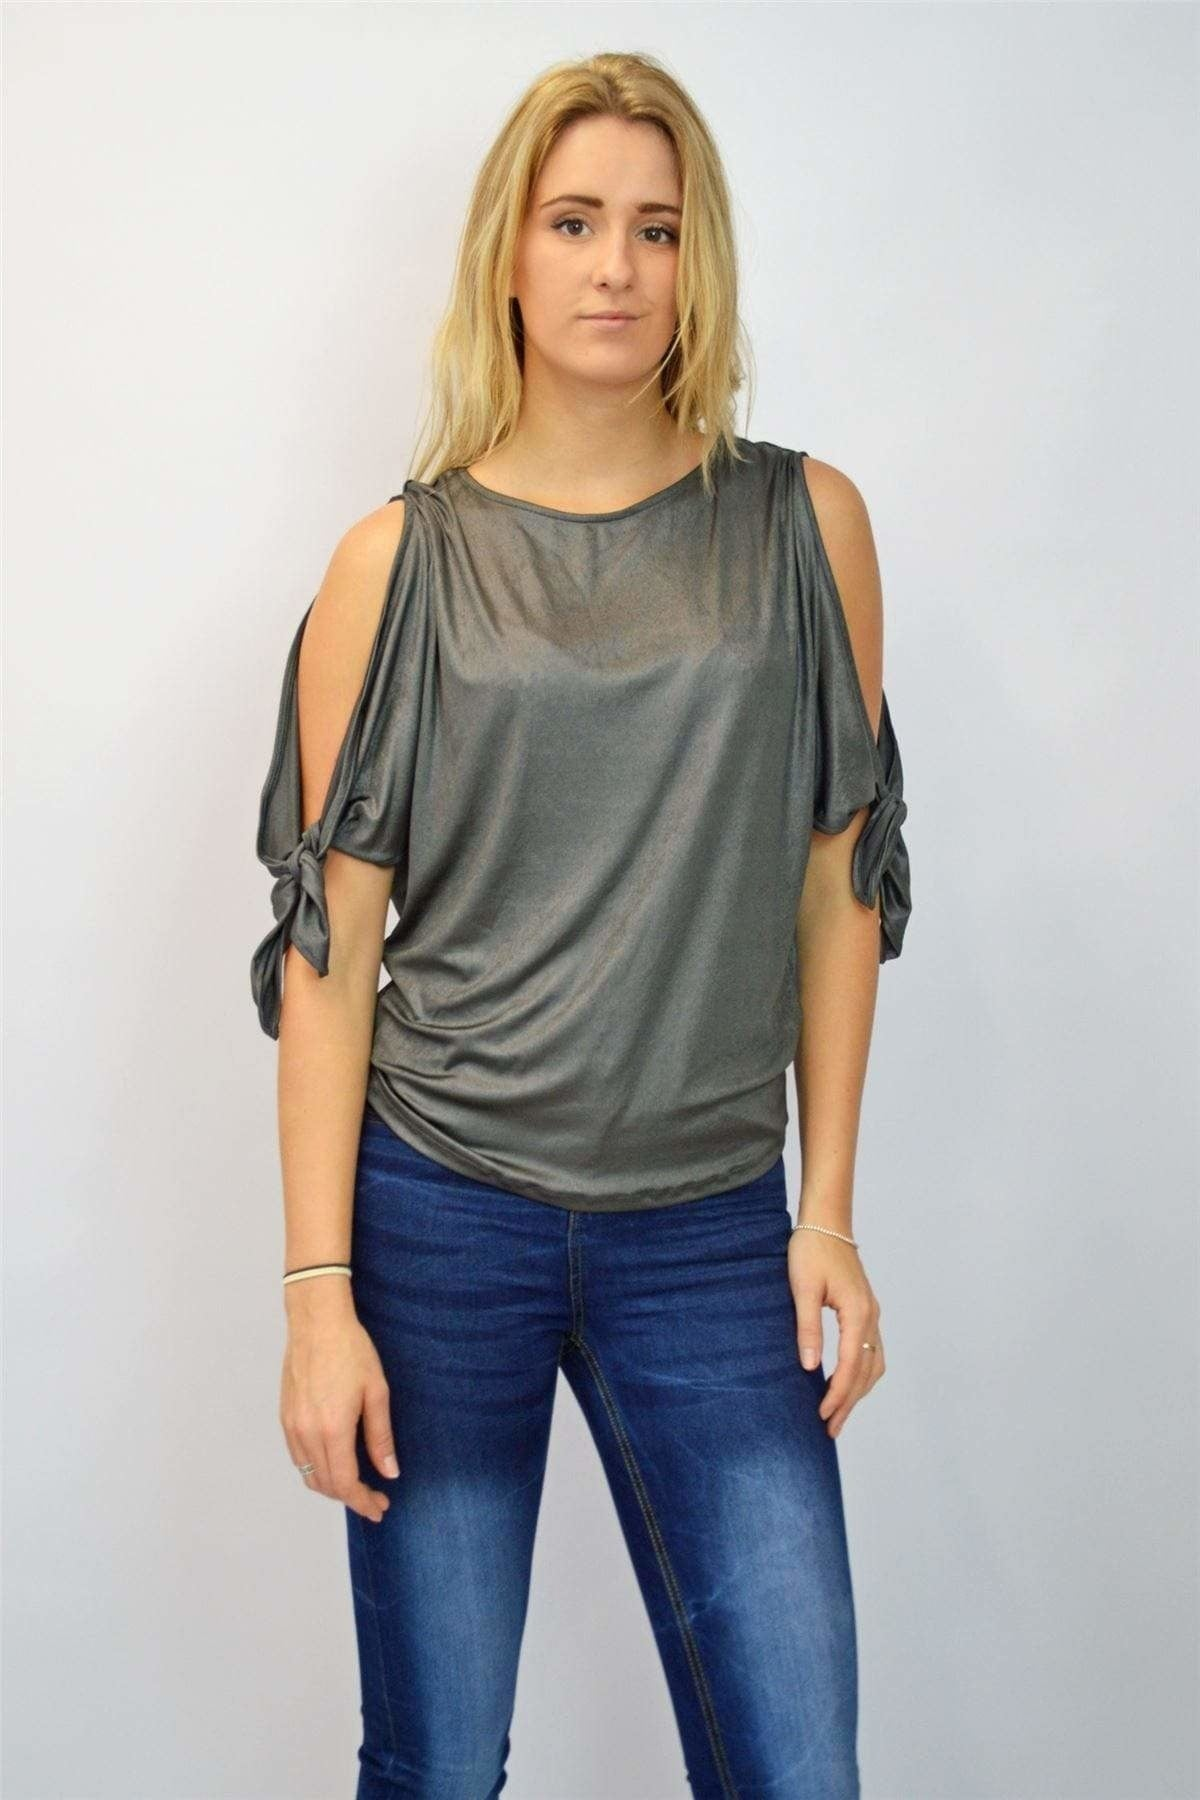 Next Ex Next Slinky Cold Shoulder Top | Secret Label